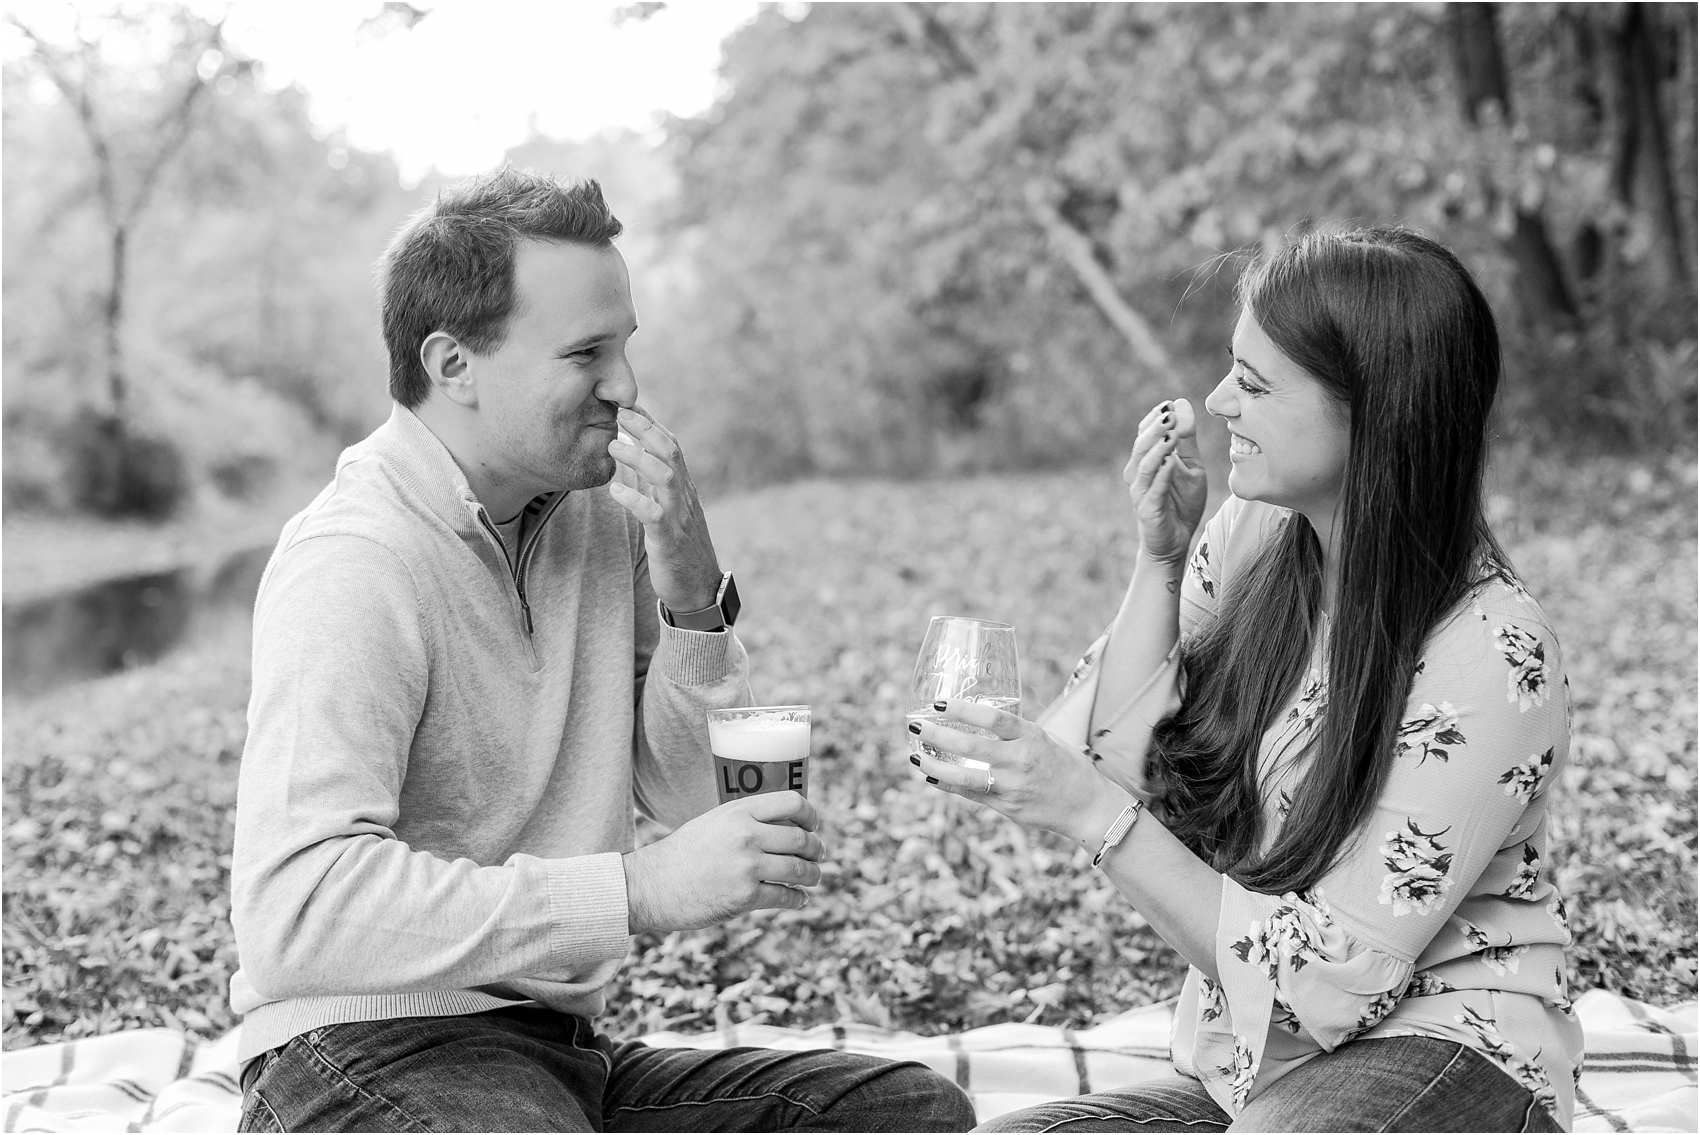 emotional-candid-romantic-engagement-photos-in-detroit-chicago-northern-michigan-by-courtney-carolyn-photography_0034.jpg